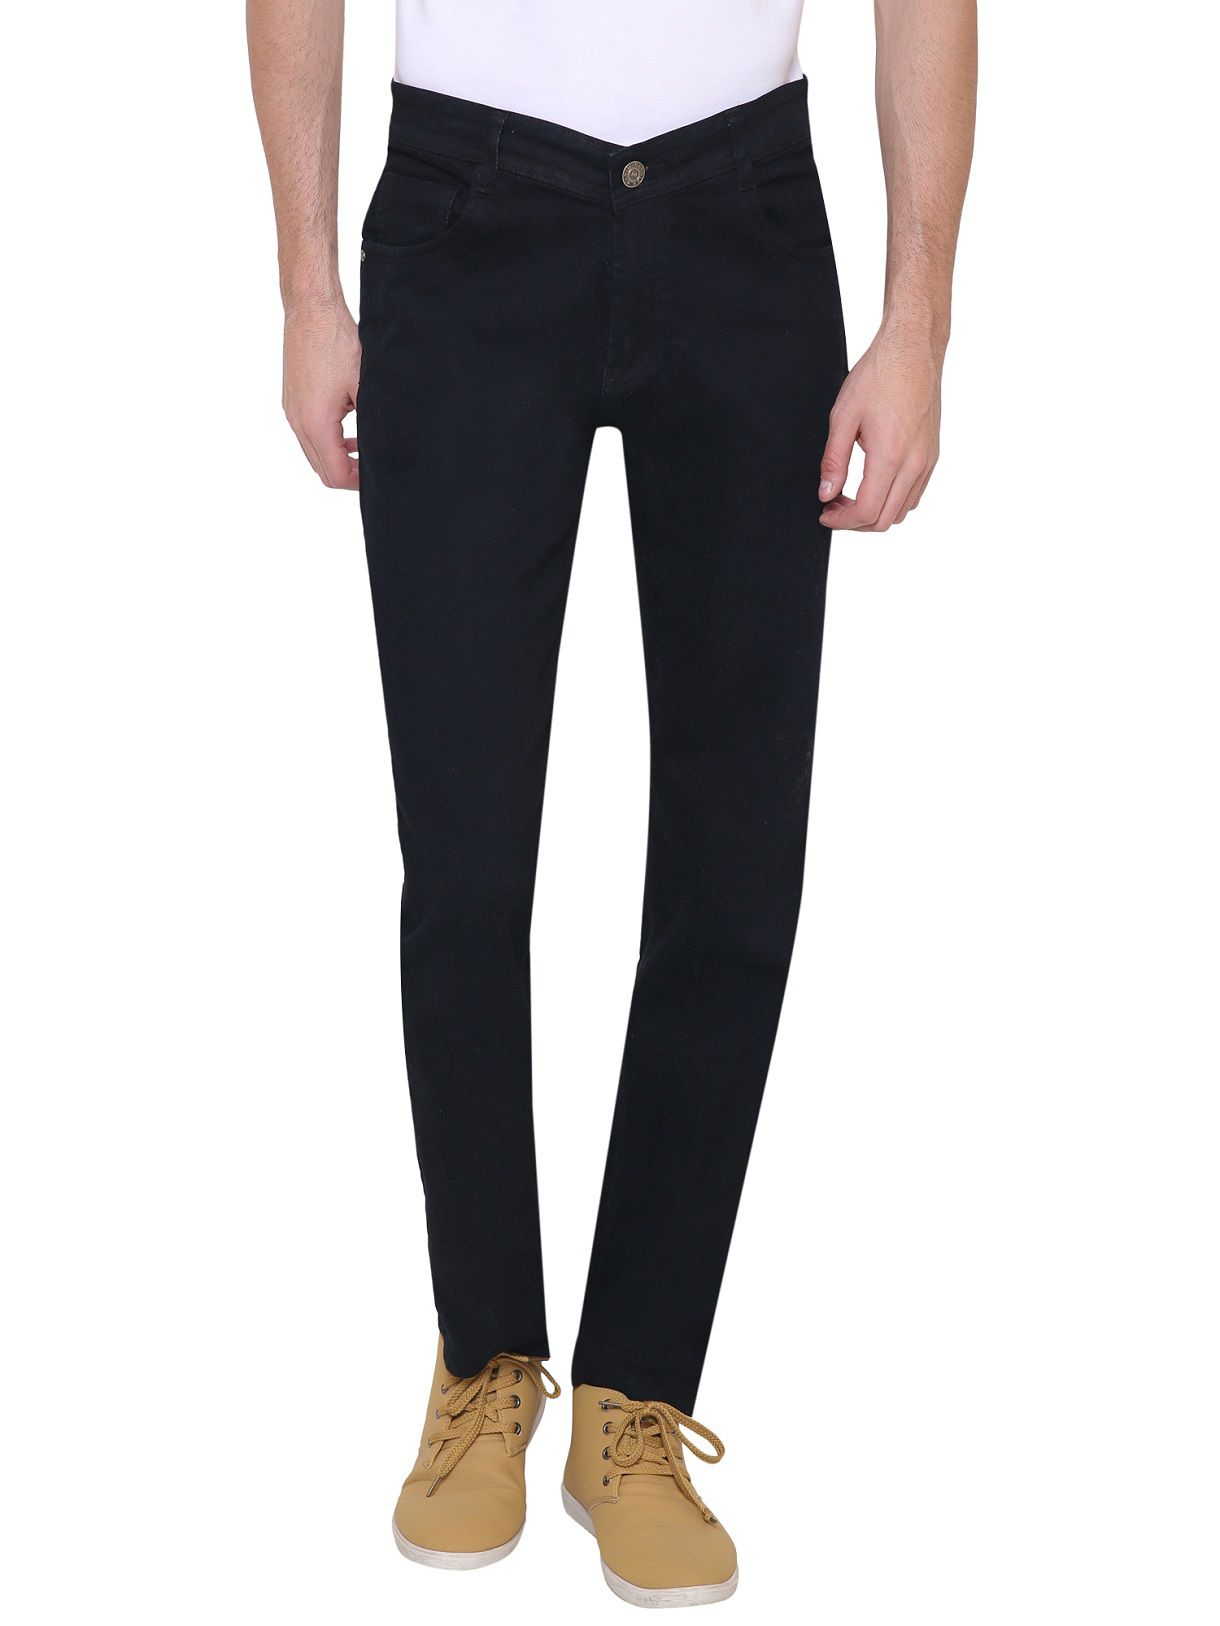 gradely Black Regular Fit Jeans